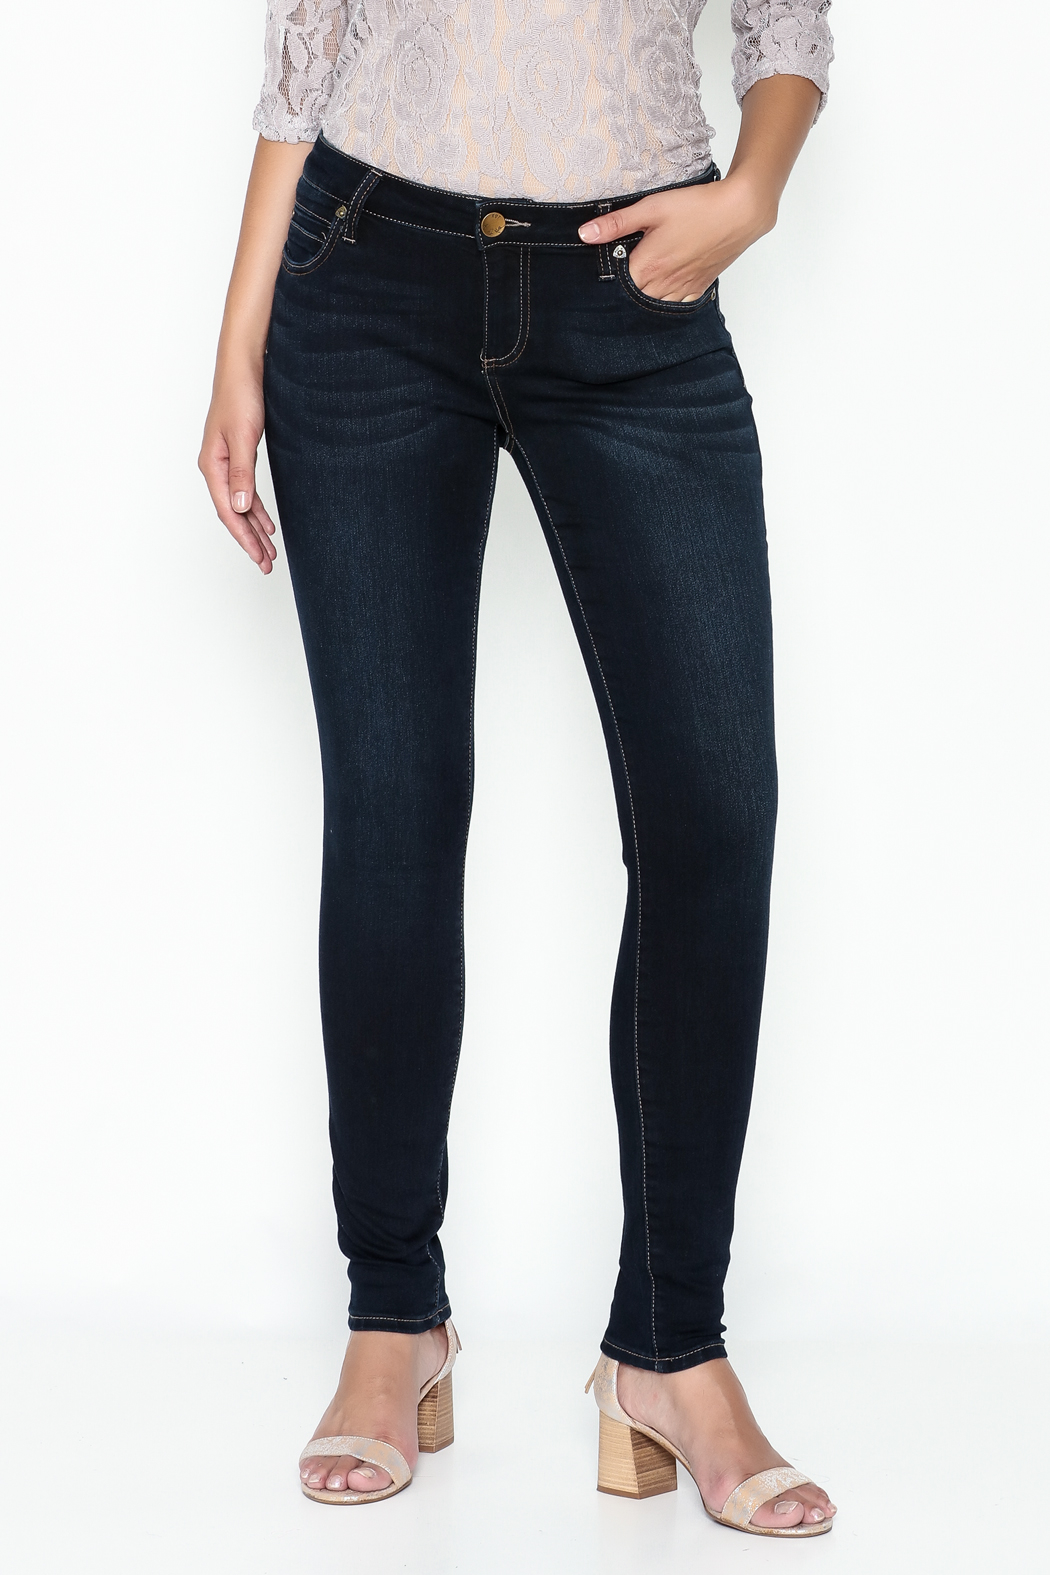 Kut from the Kloth Toothpick Skinny Denim Jeans - Main Image